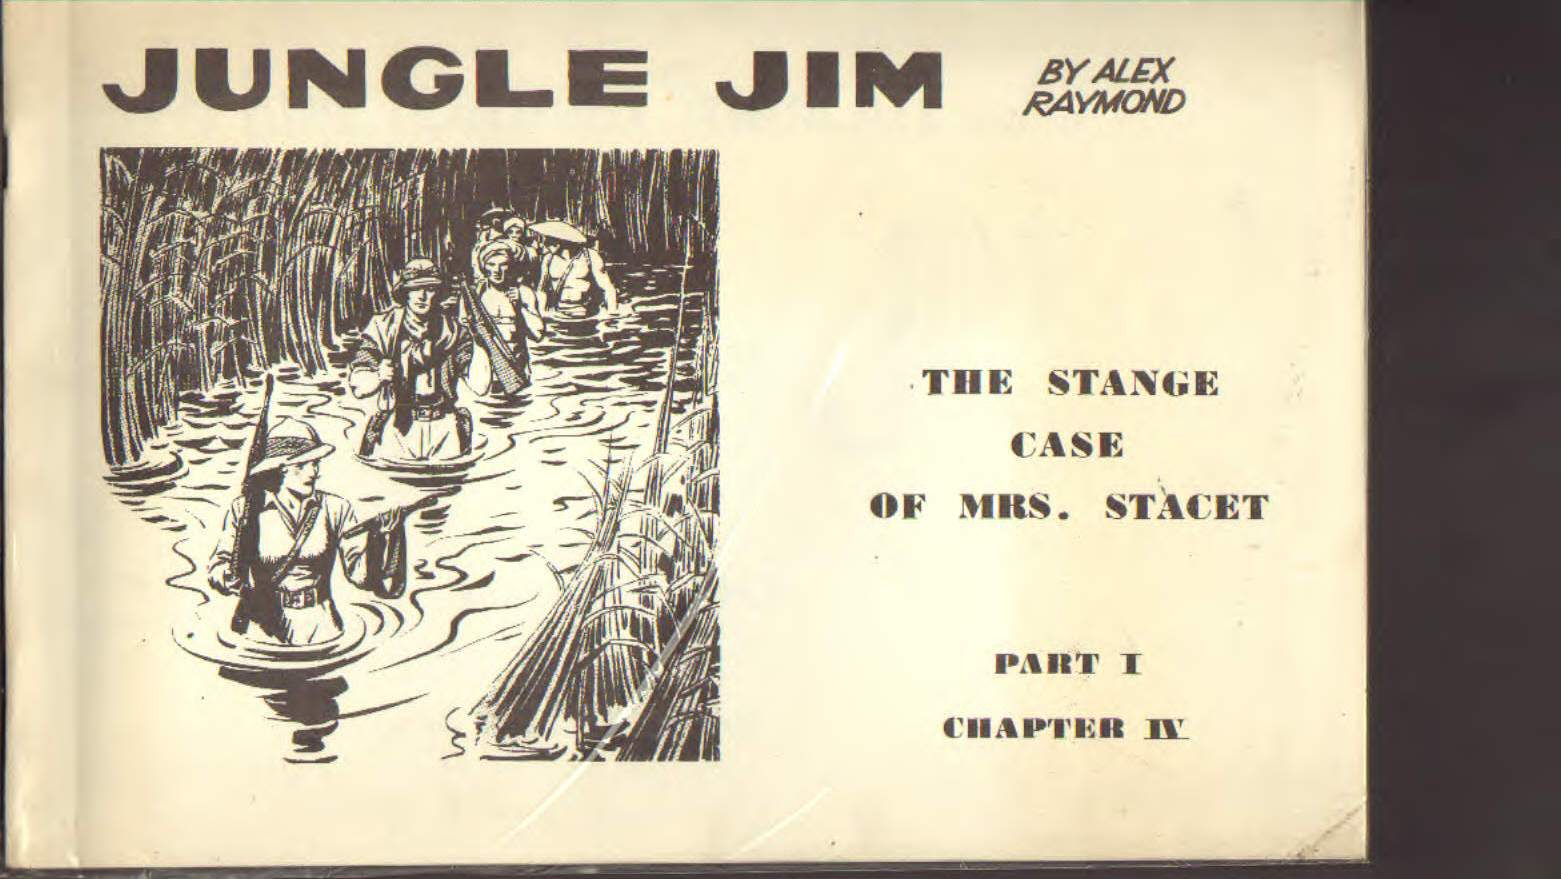 Jungle Jim by Alex Raymond the stange case of mrs Stacet